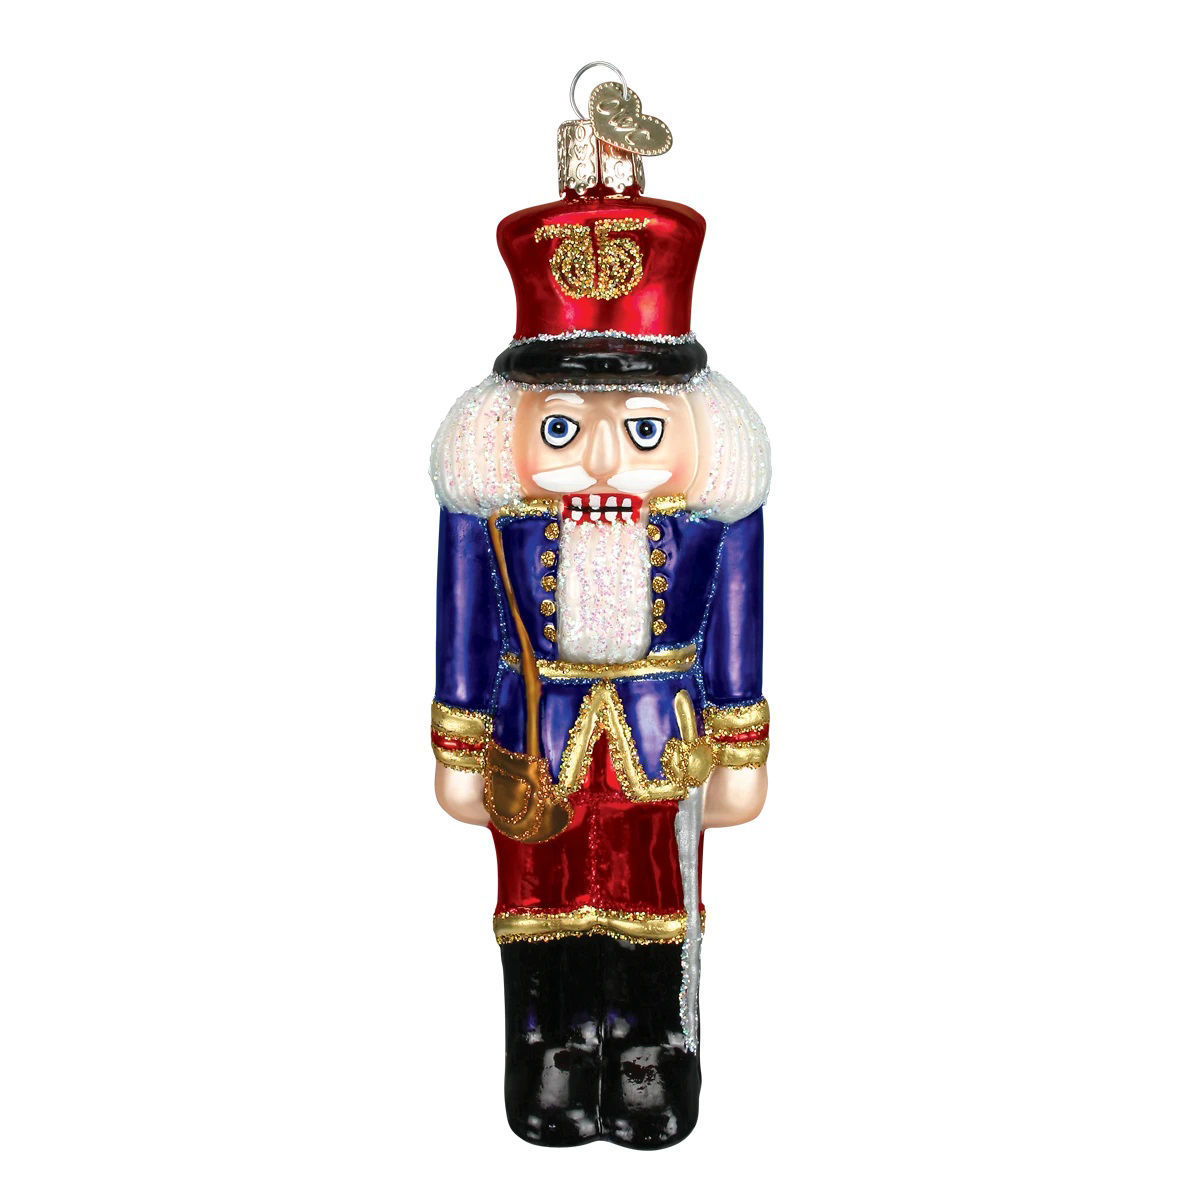 Soldier Nutcracker Ornament (Assorted) by Old World Christmas